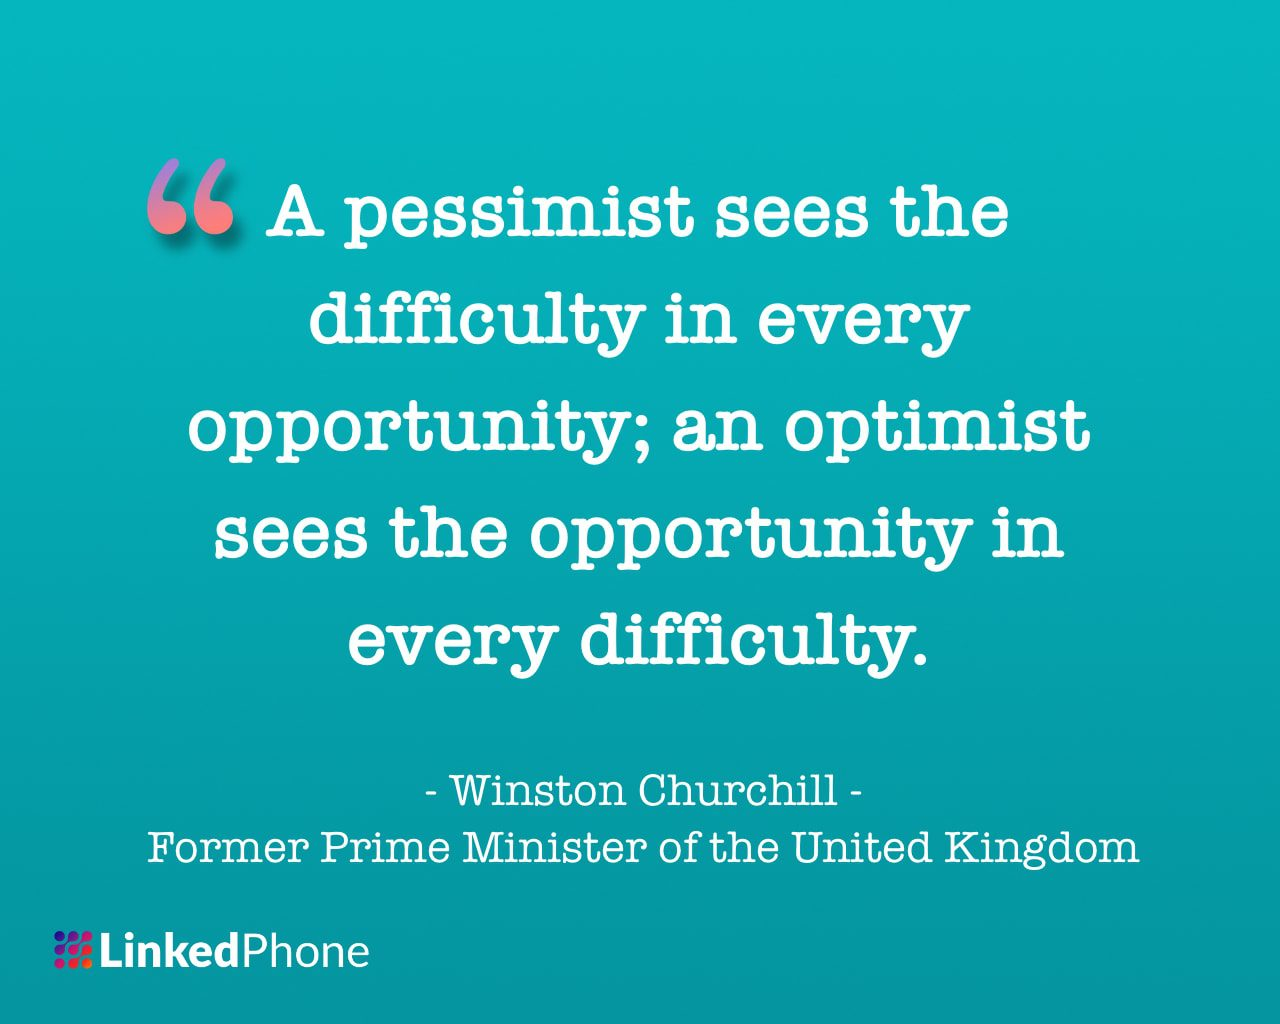 Winston Churchill - Motivational Inspirational Quotes and Sayings